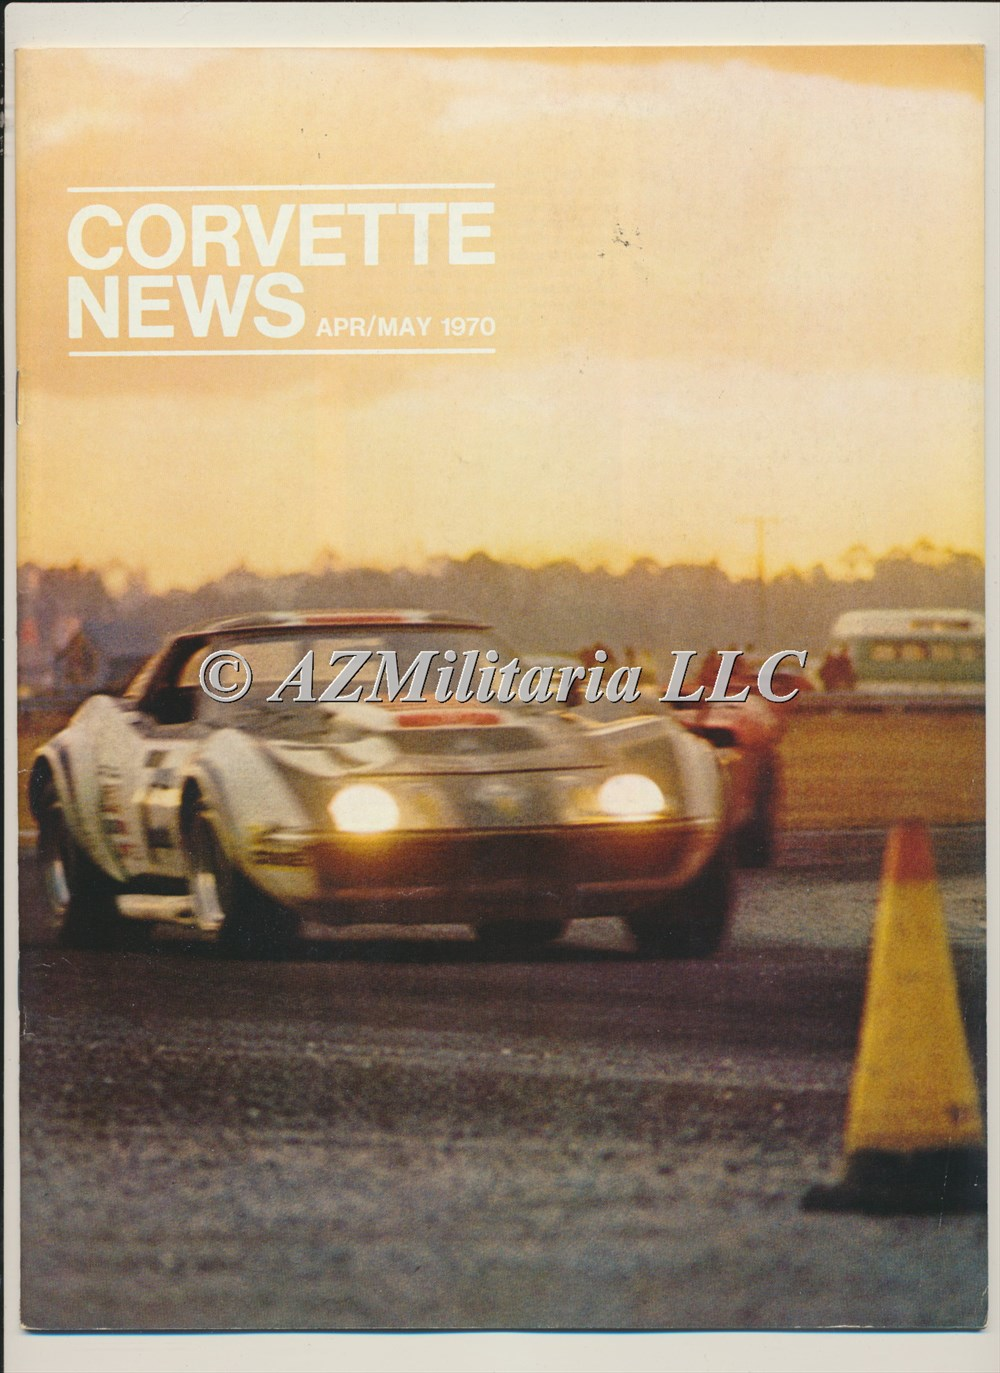 Primary image for Corvette News Apr/May 1970